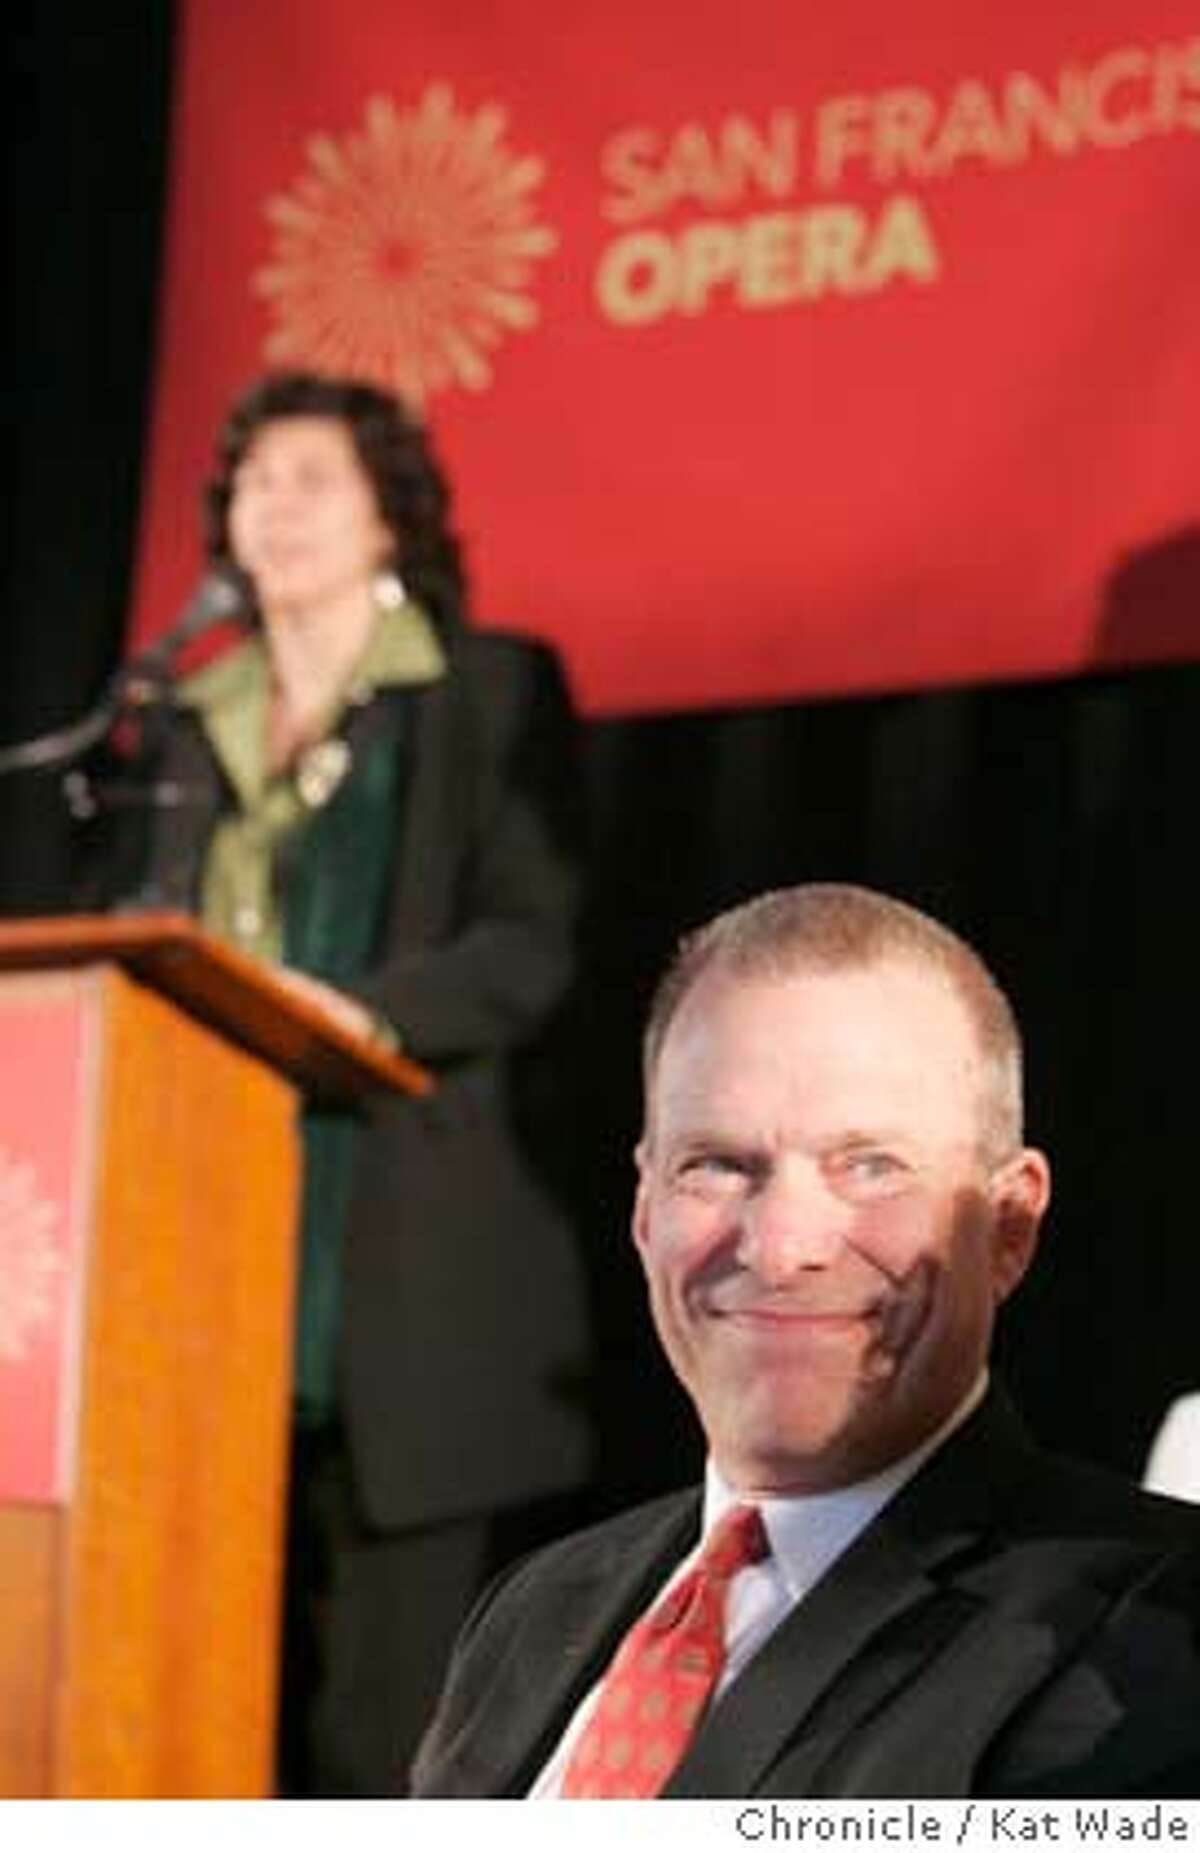 OPERA23_051_KW_.jpg (L to R) Artistic Director Francesca Zambello addresses the press when San Francisco Opera general director David Gockley (foreground) announces the 85th season at a press conference on Monday January 22, 2007. Kat Wade/The Chronicle Mandatory Credit for San Francisco Chronicle and photographer, Kat Wade, Mags out